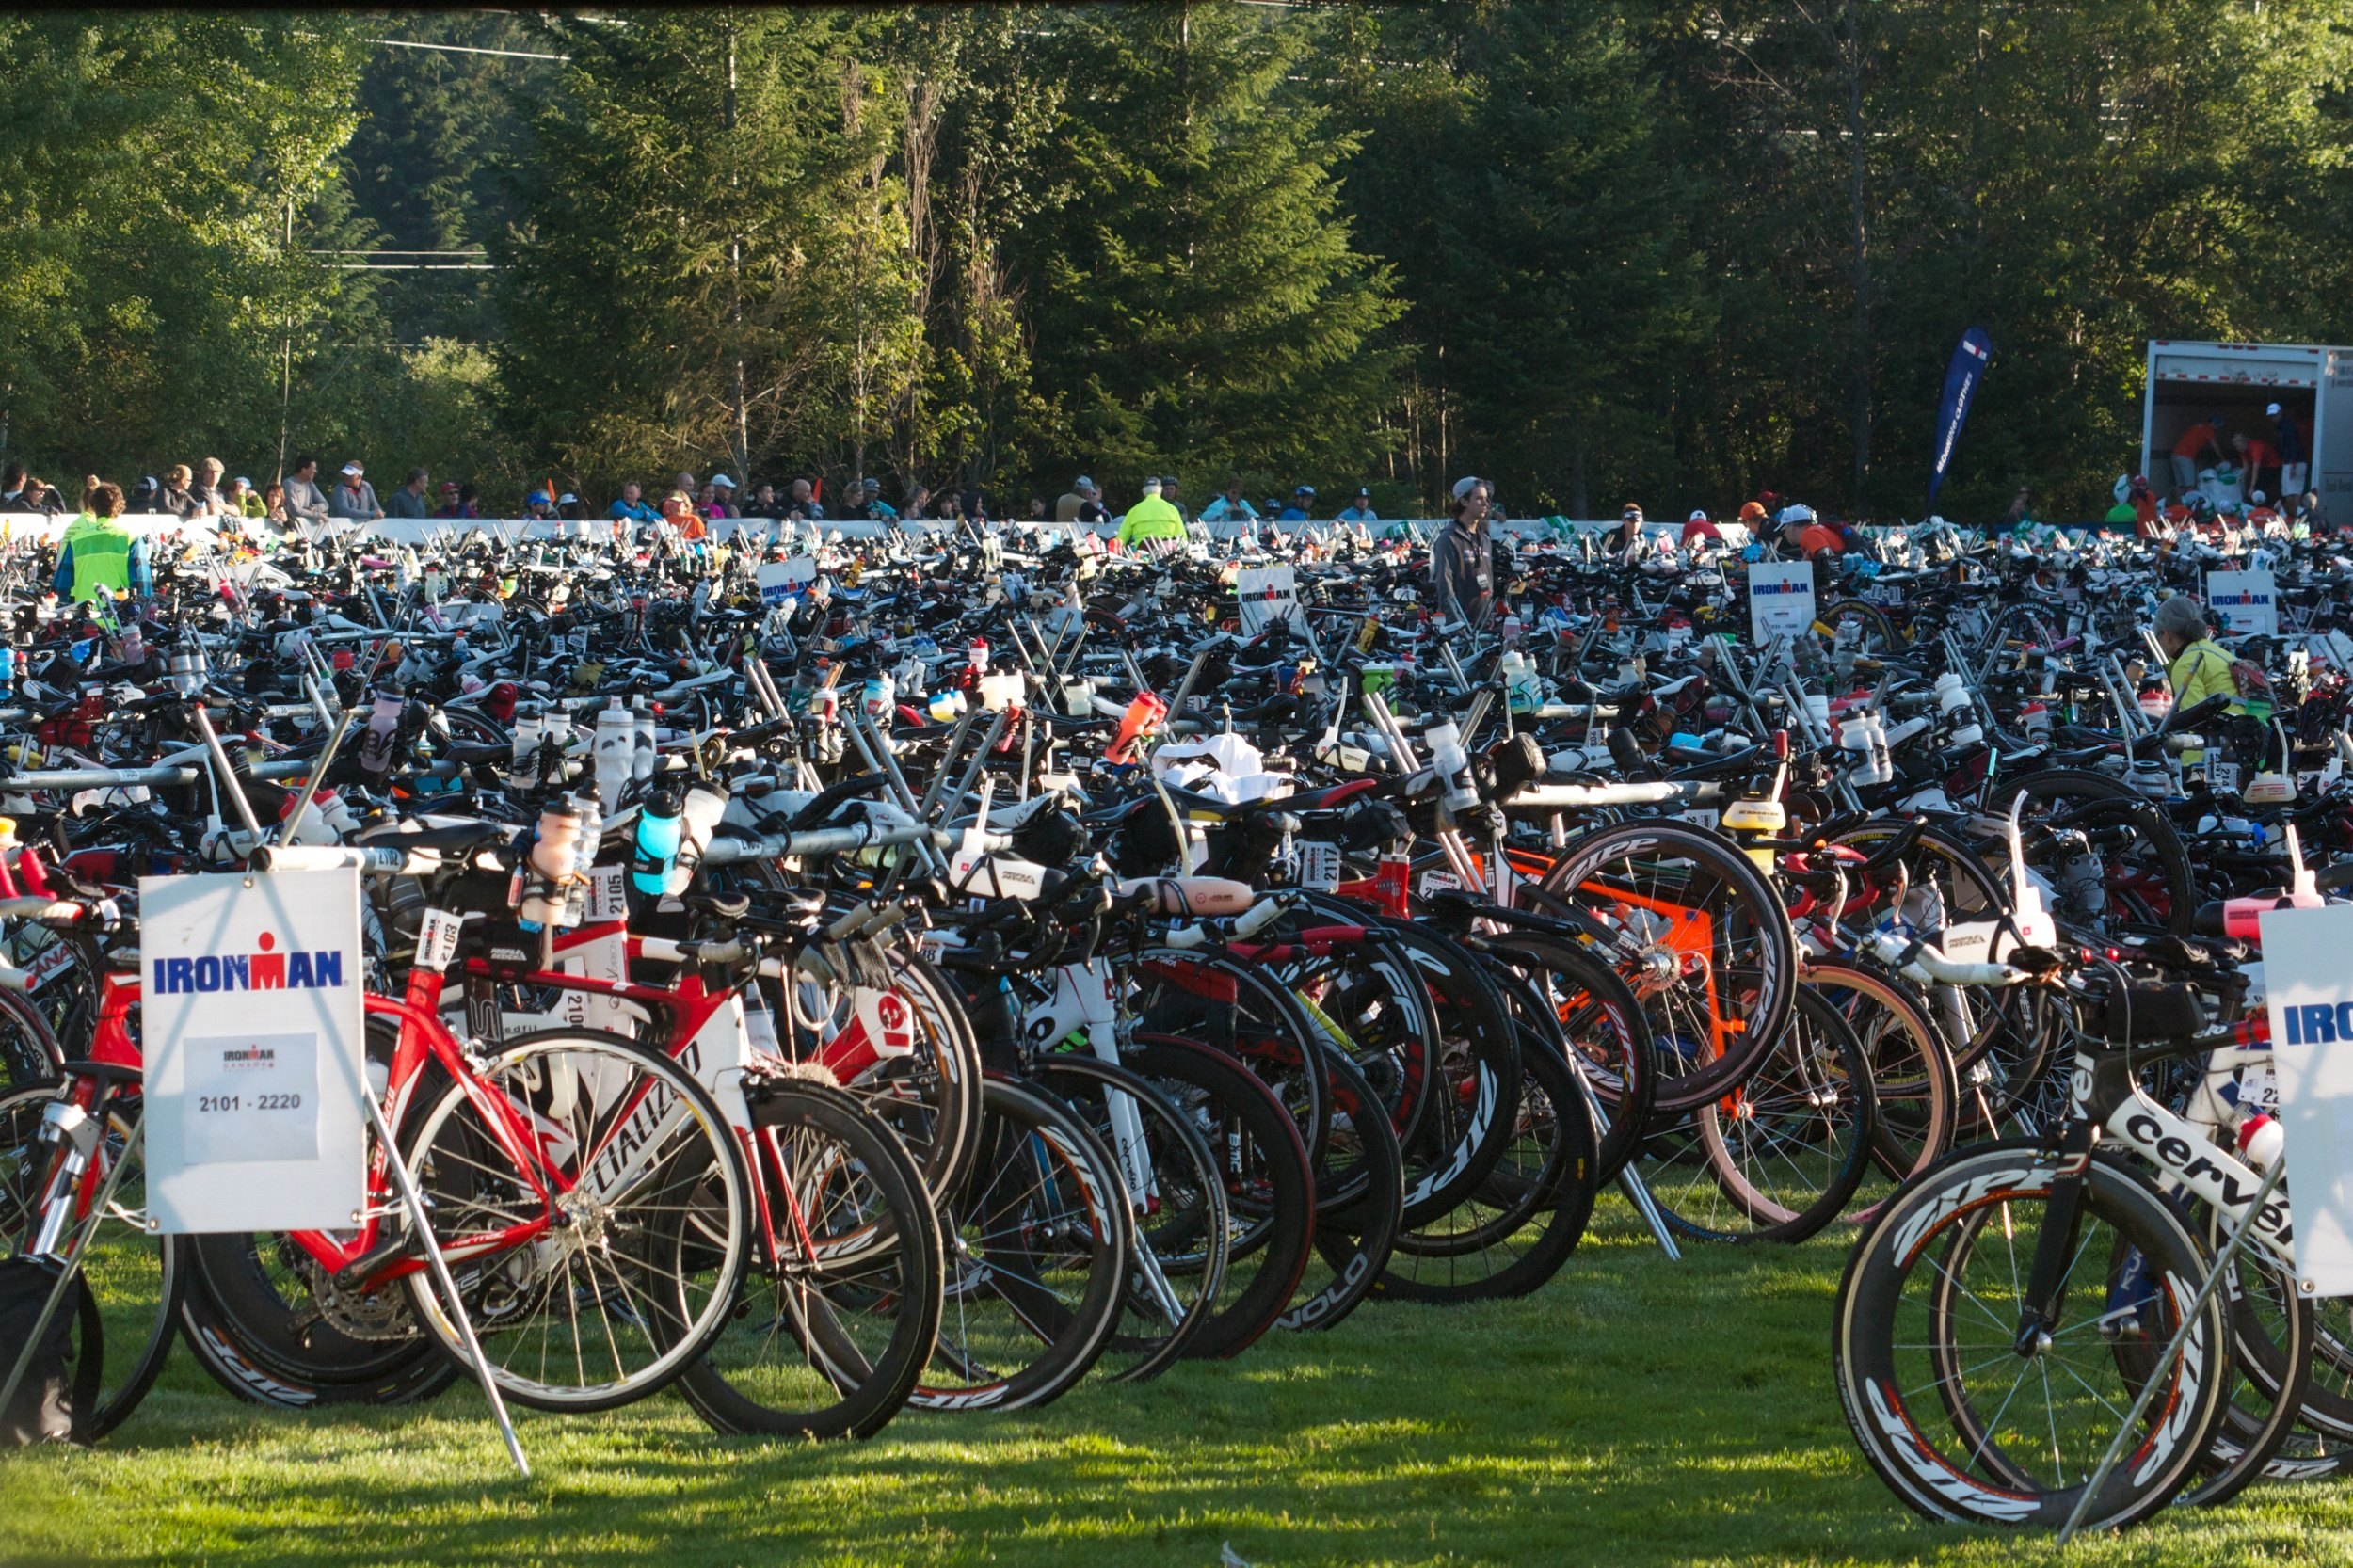 """The definition of Food + Gear for the athletes. This is """"T1"""" or the area where athletes transition from swim to bike. Those bikes are locked and loaded with all the food + gear the athletes will need for 180kms on the bike, the longest leg of an Ironman triathlon."""